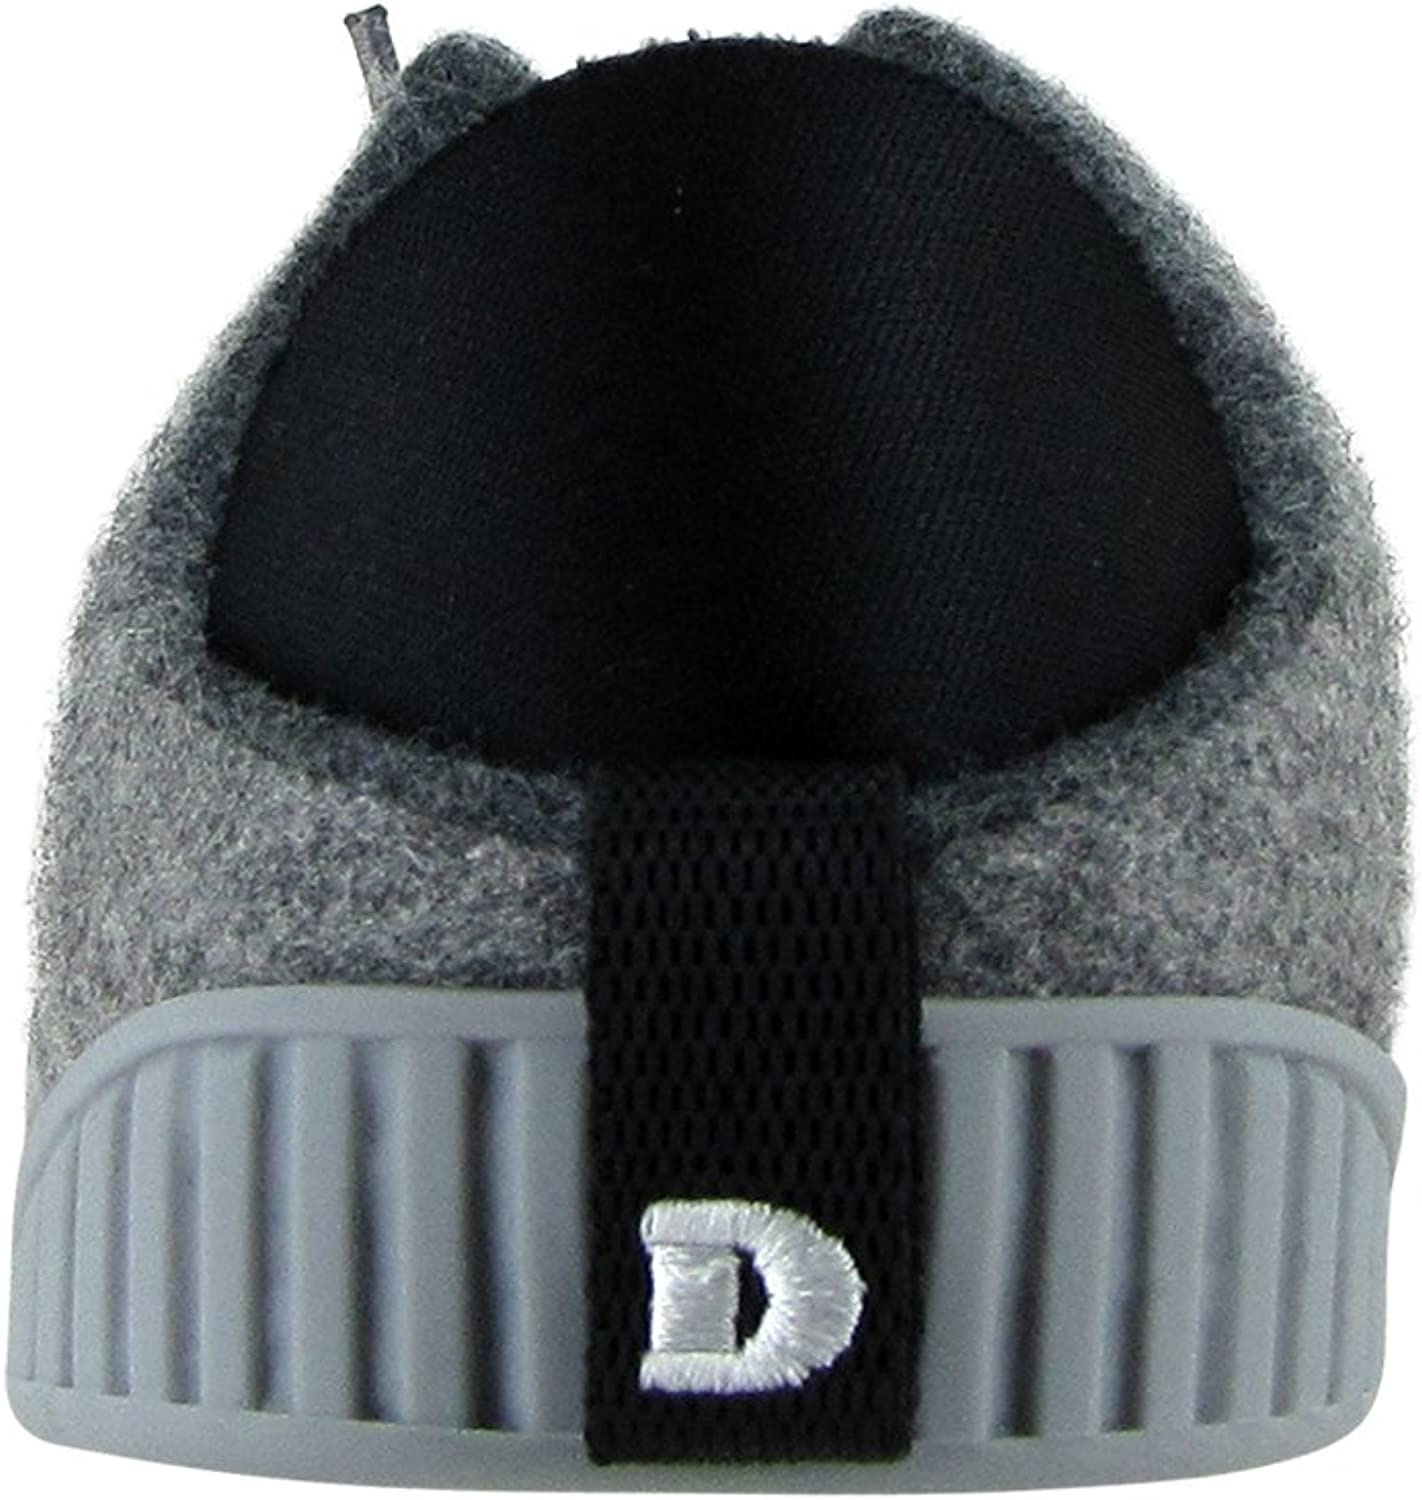 Dualyz Fit Unisex 100/% Wool Slipper Shoe with Removable Sole